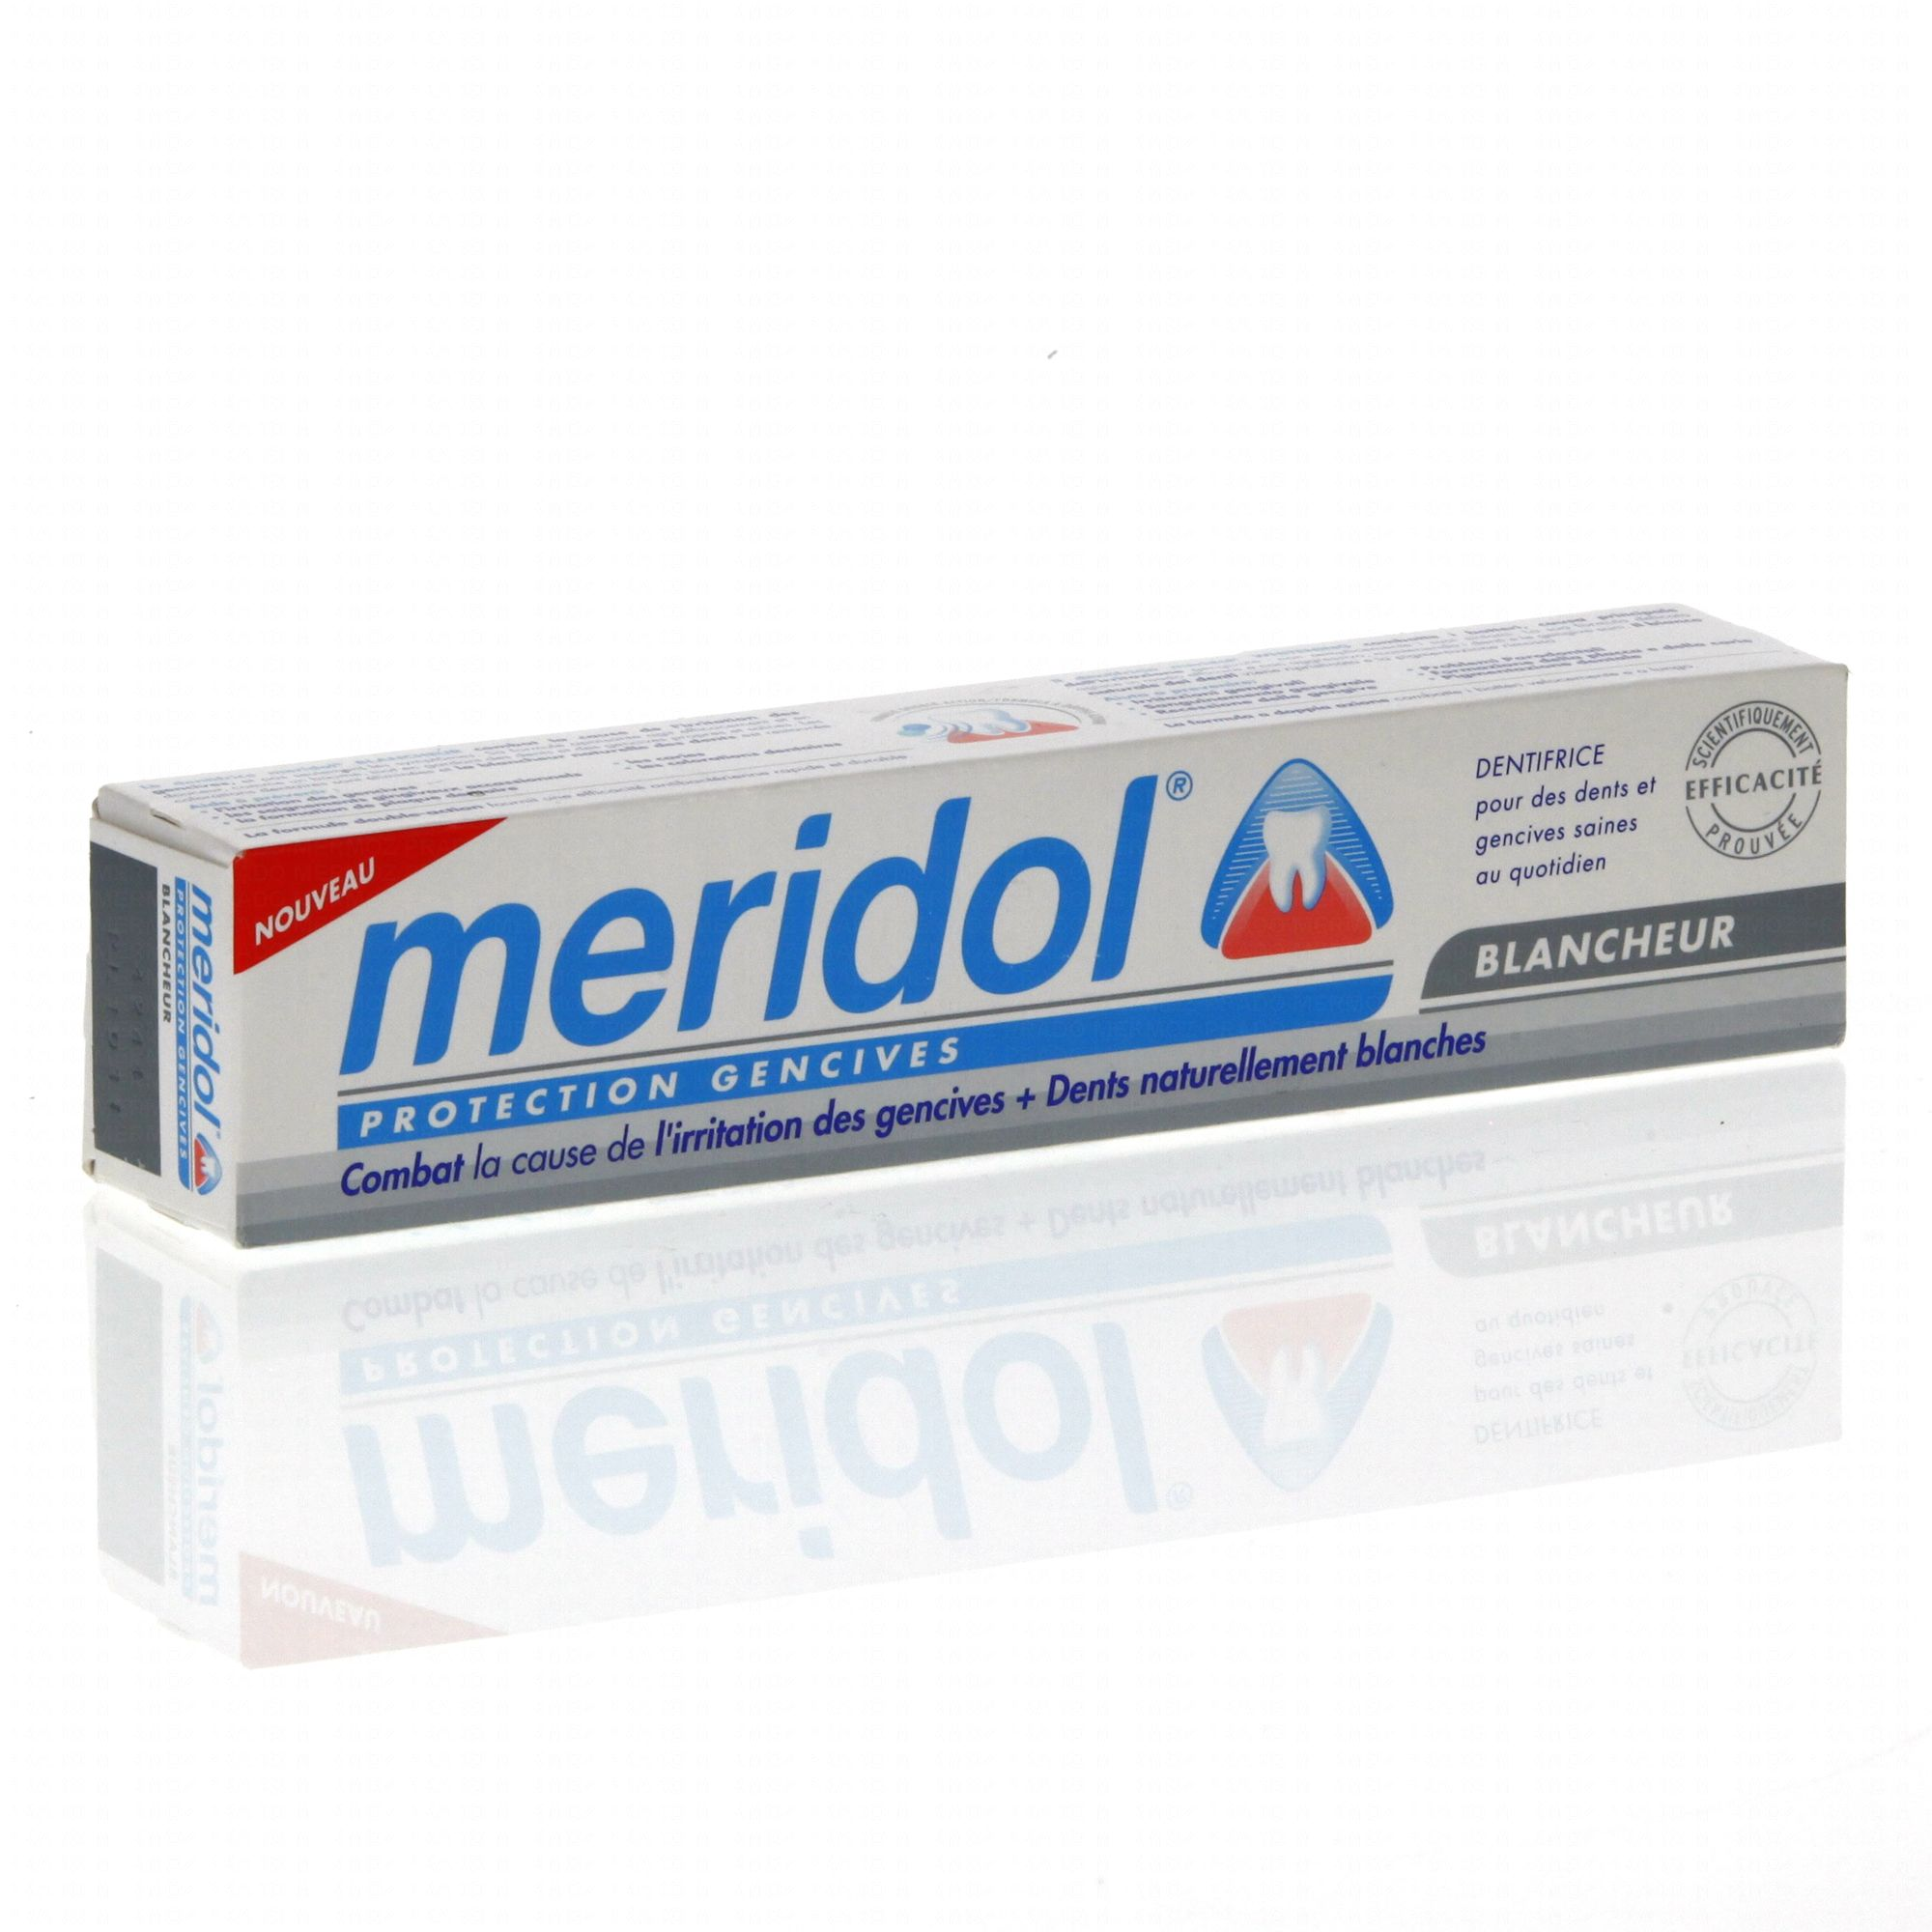 meridol dentifrice protection des gencives blancheur tube 75ml parapharmacie en ligne. Black Bedroom Furniture Sets. Home Design Ideas